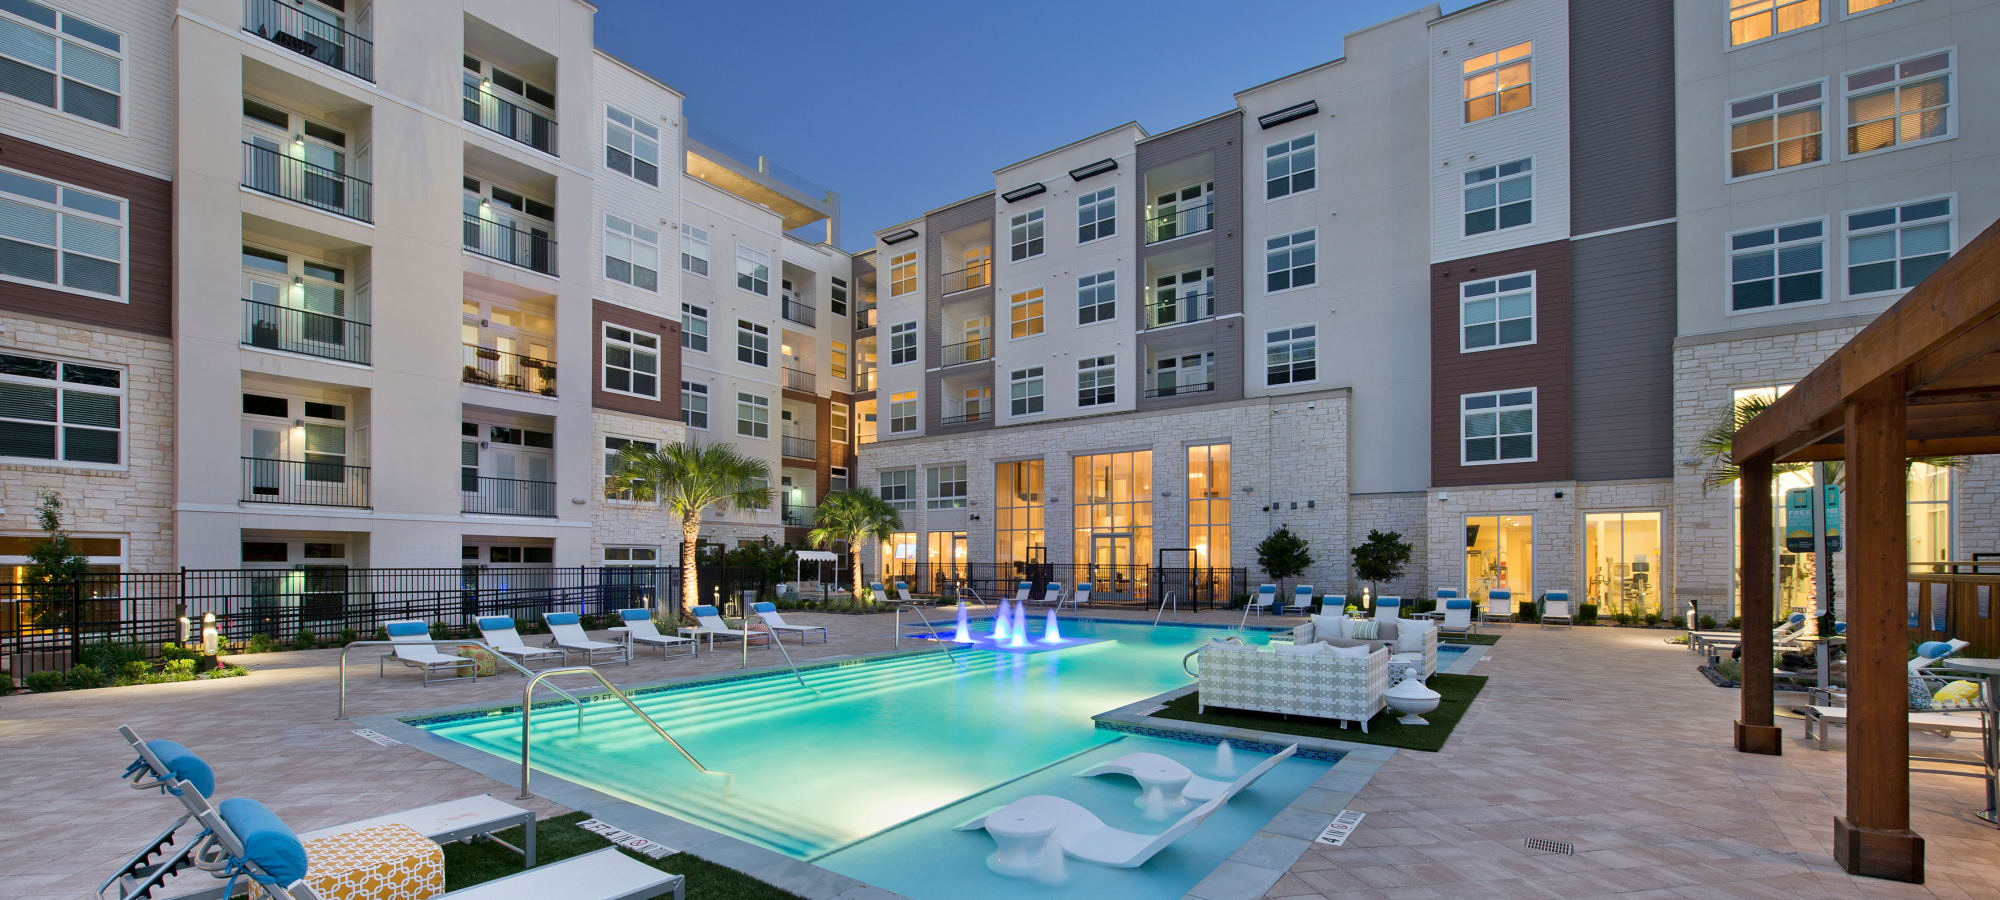 Luxury Apartments & Townhomes in Mid-West Houston, TX ...